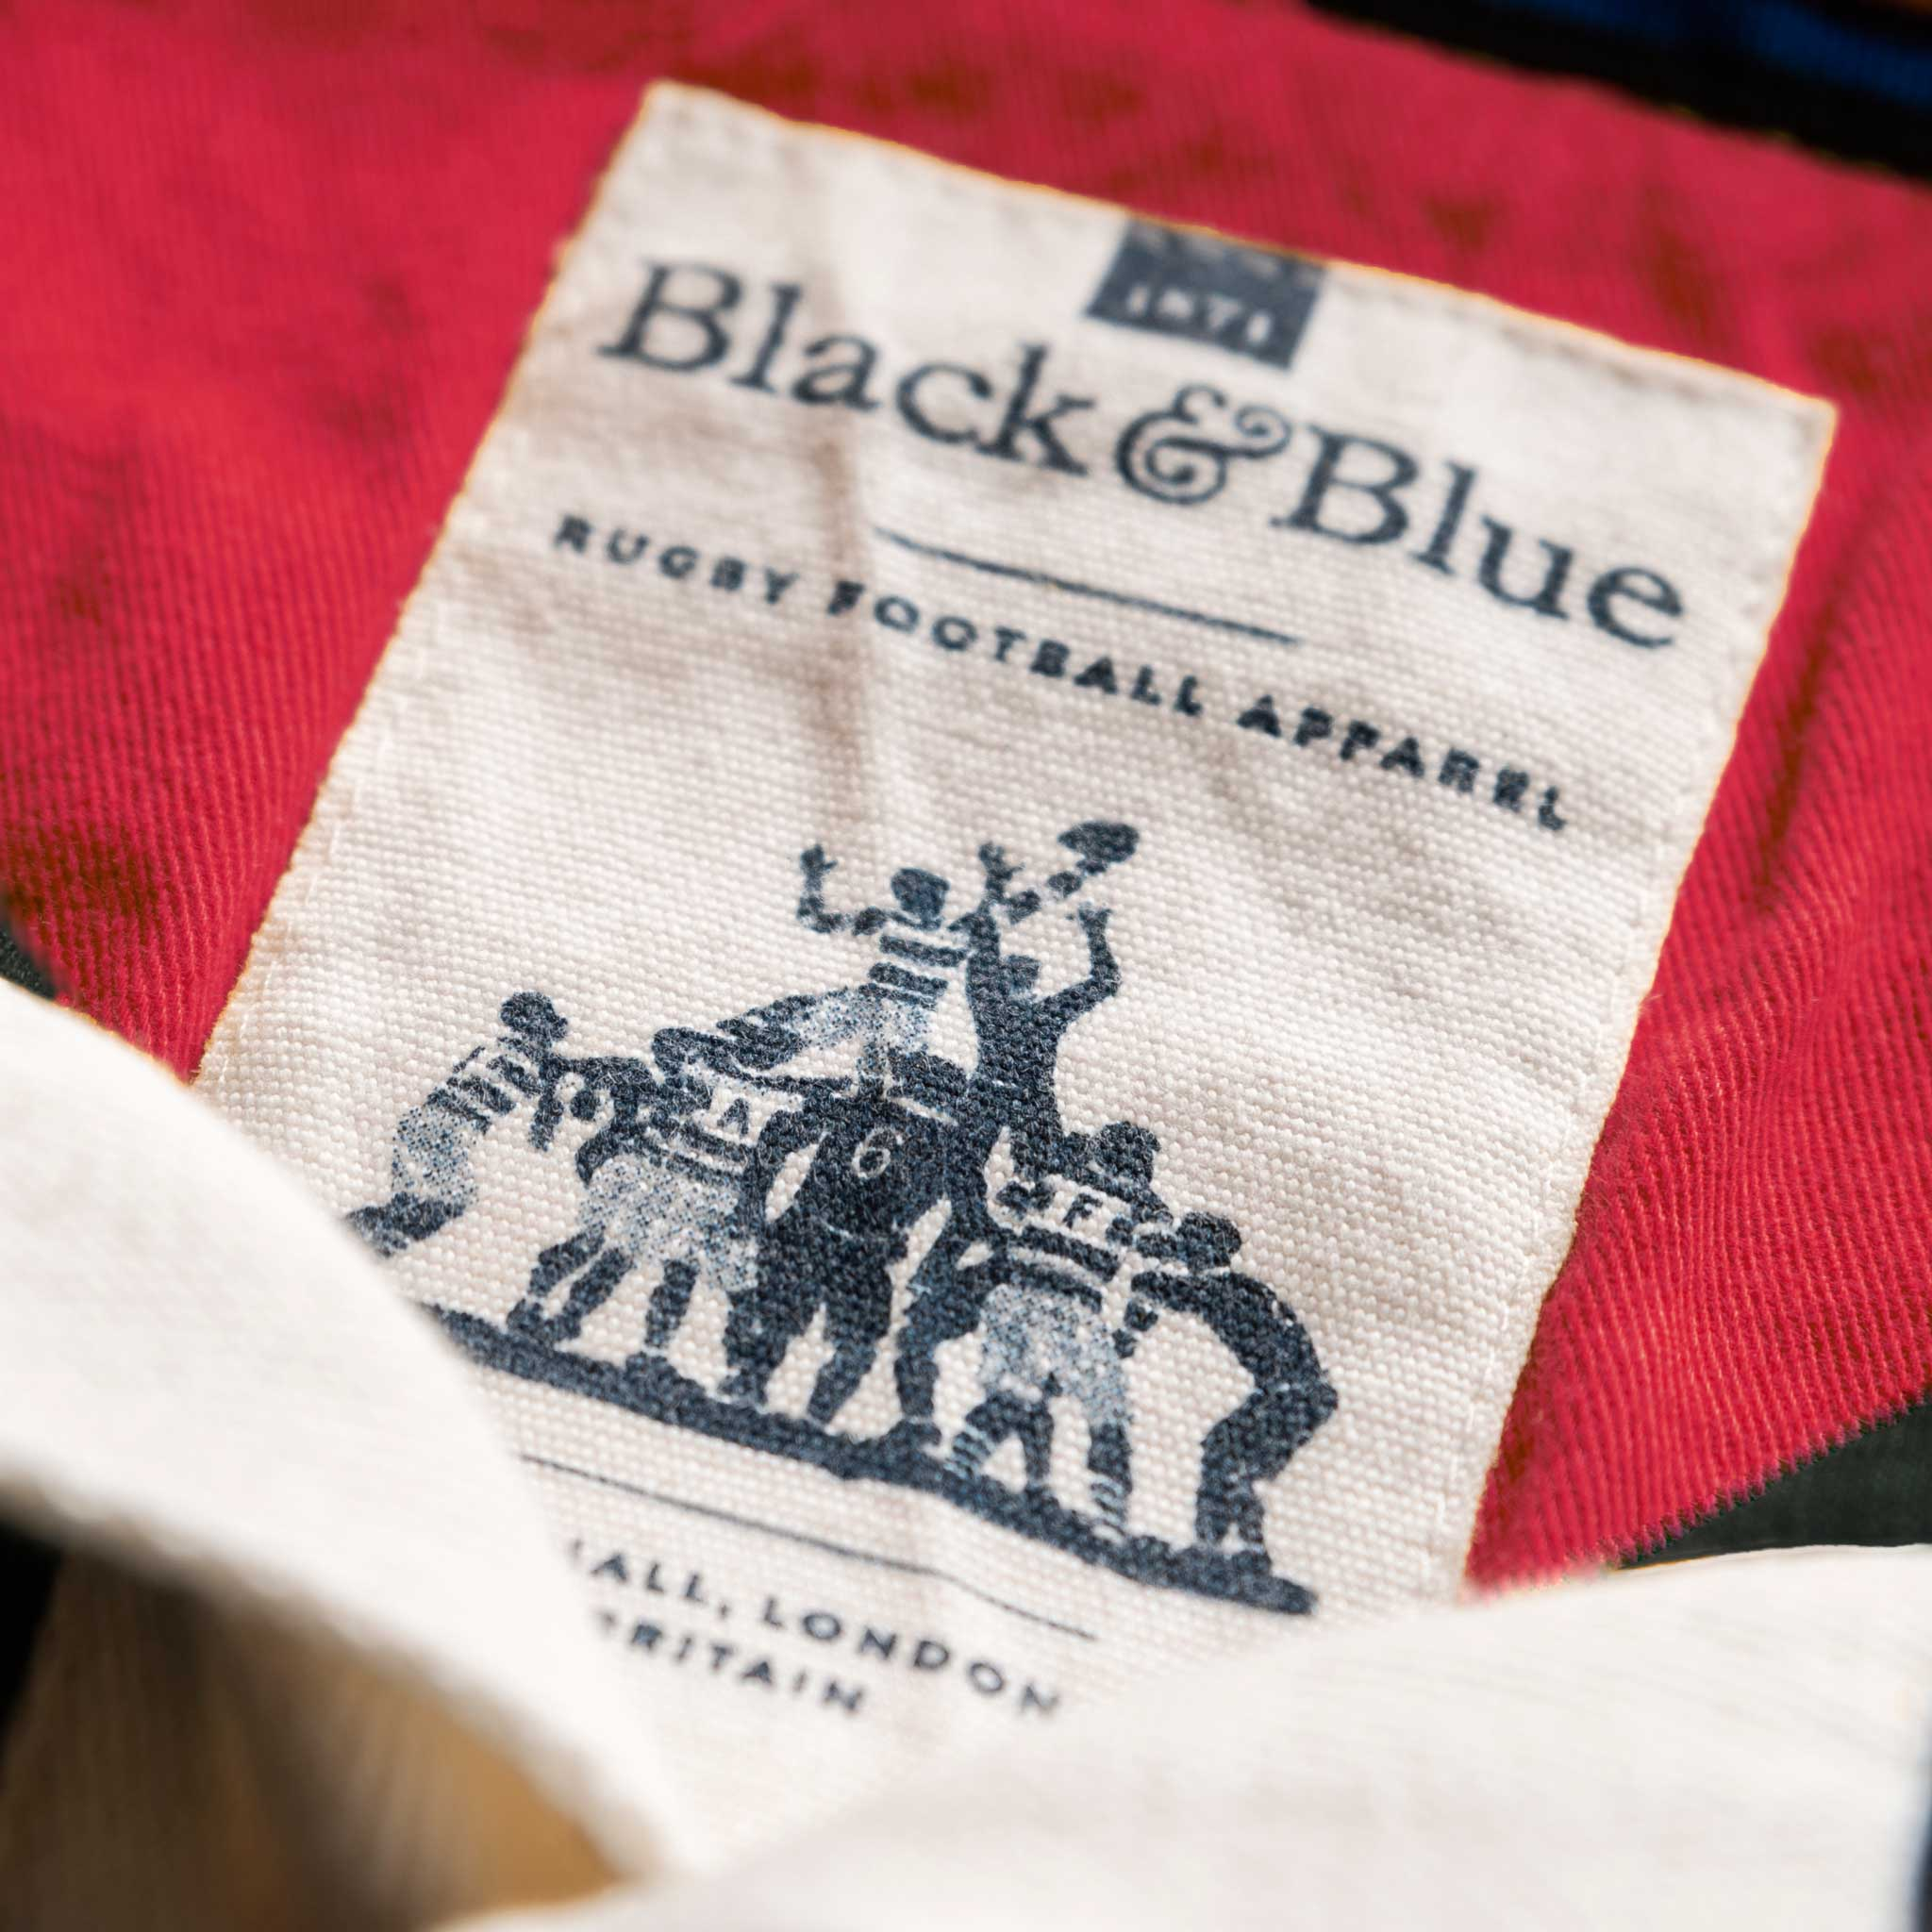 Wests Panthers 1915 Rugby Shirt_Folded